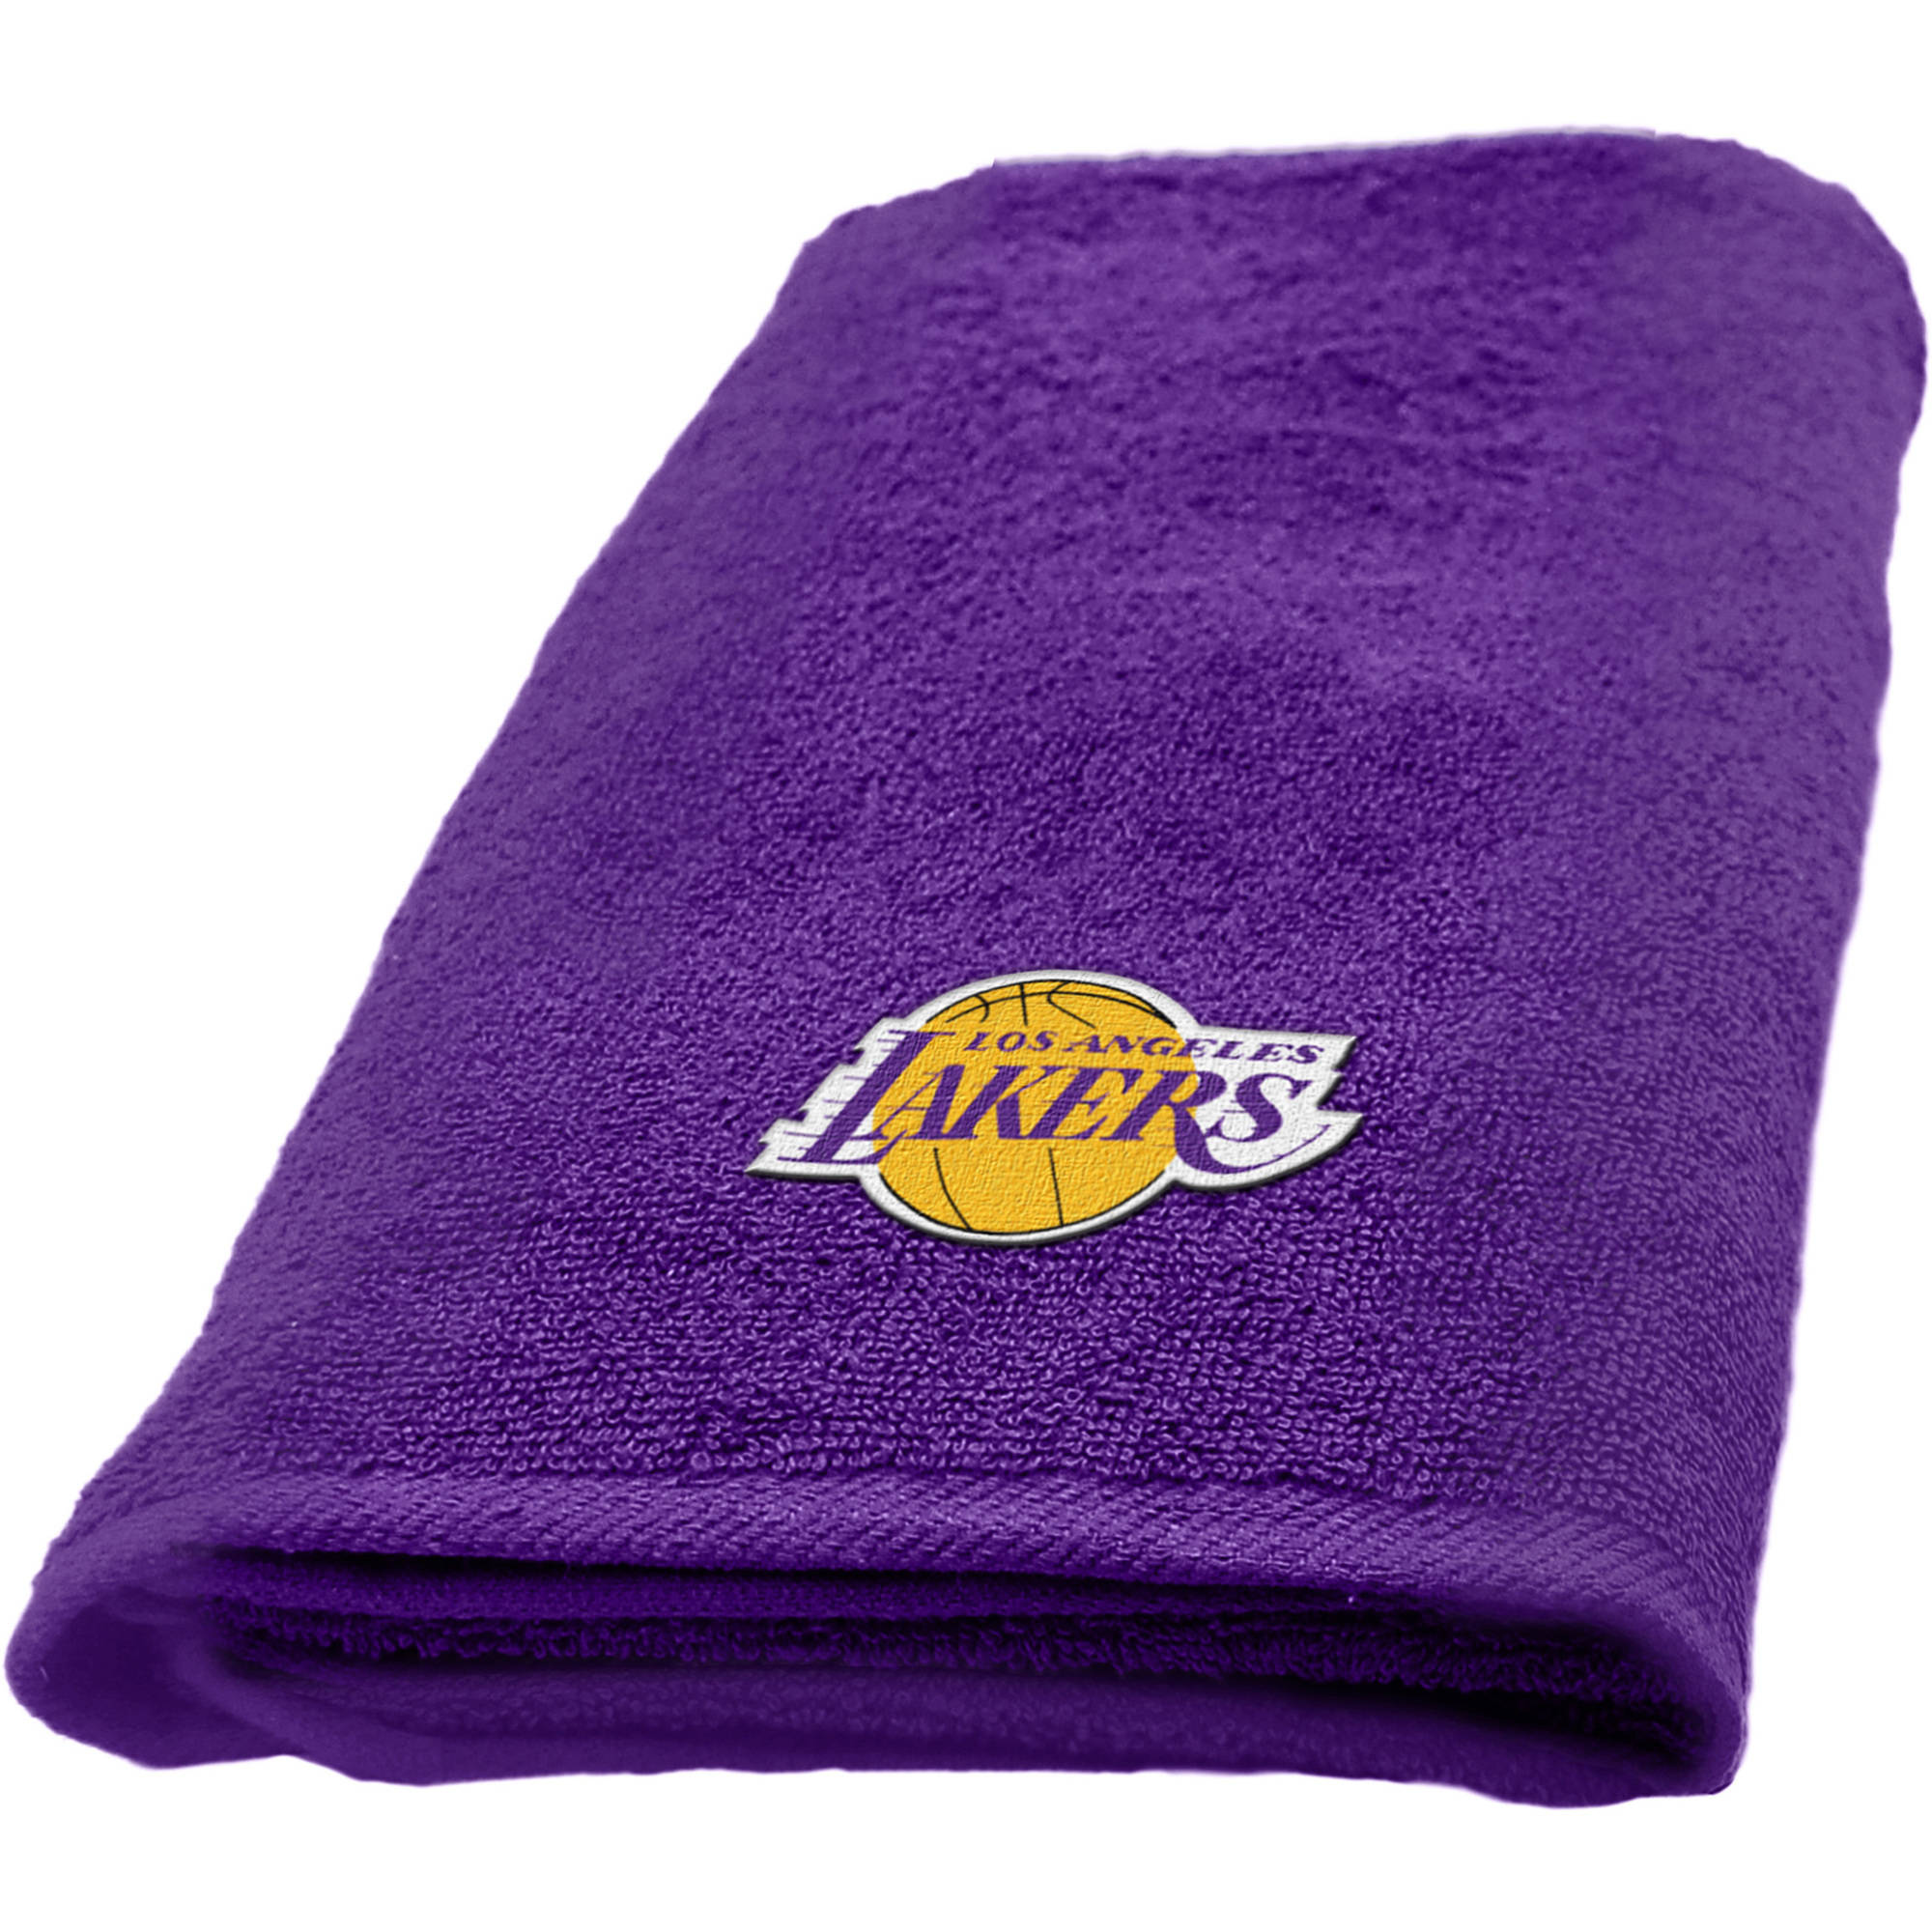 "NBA Los Angeles Lakers 15"" x 26"" Applique Hand Towel, 1 Each"